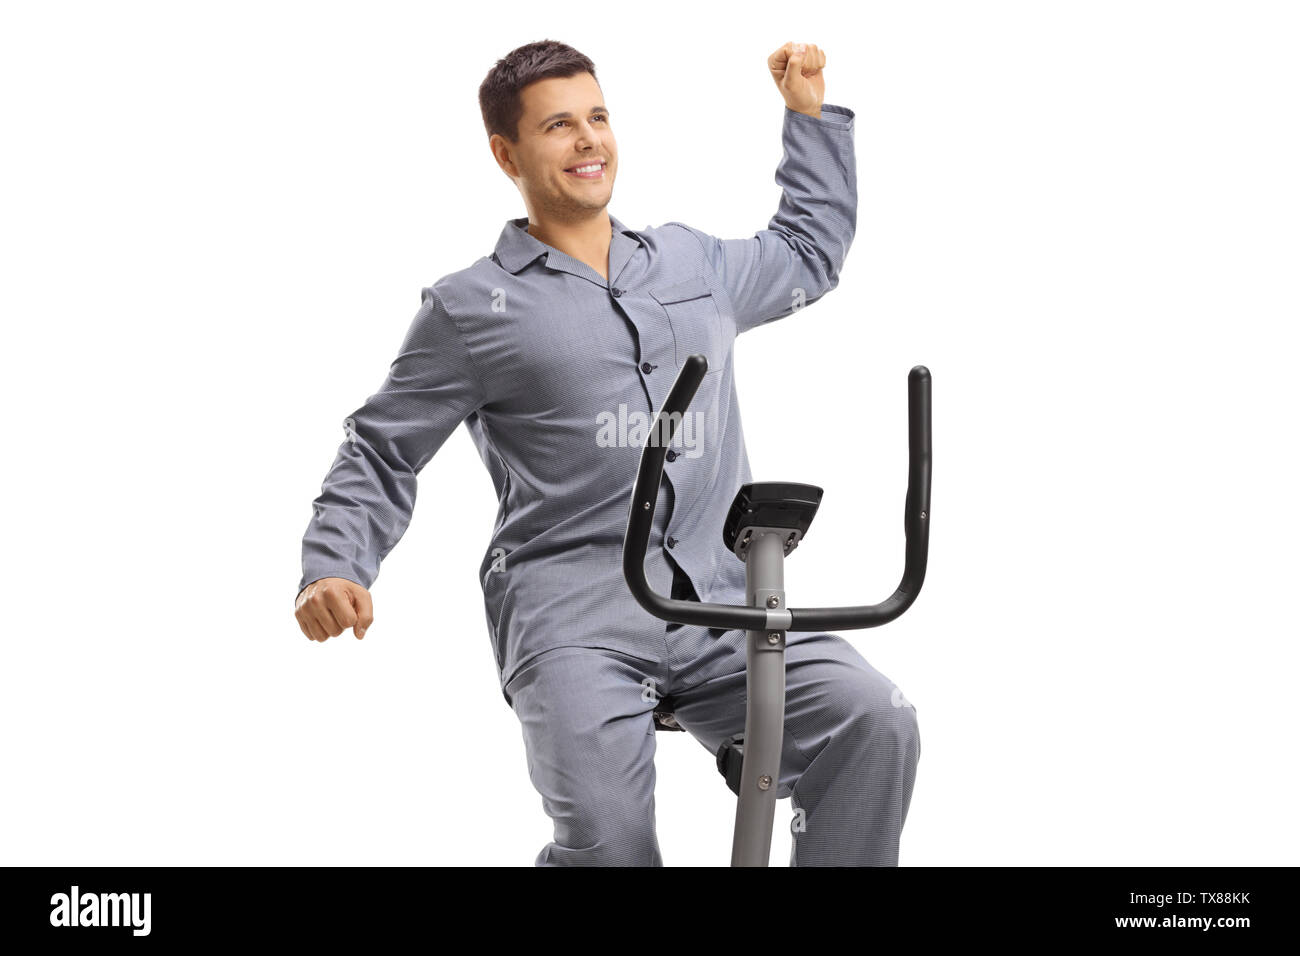 Young guy in pajams stretching on an exercise bike isolated on white background - Stock Image